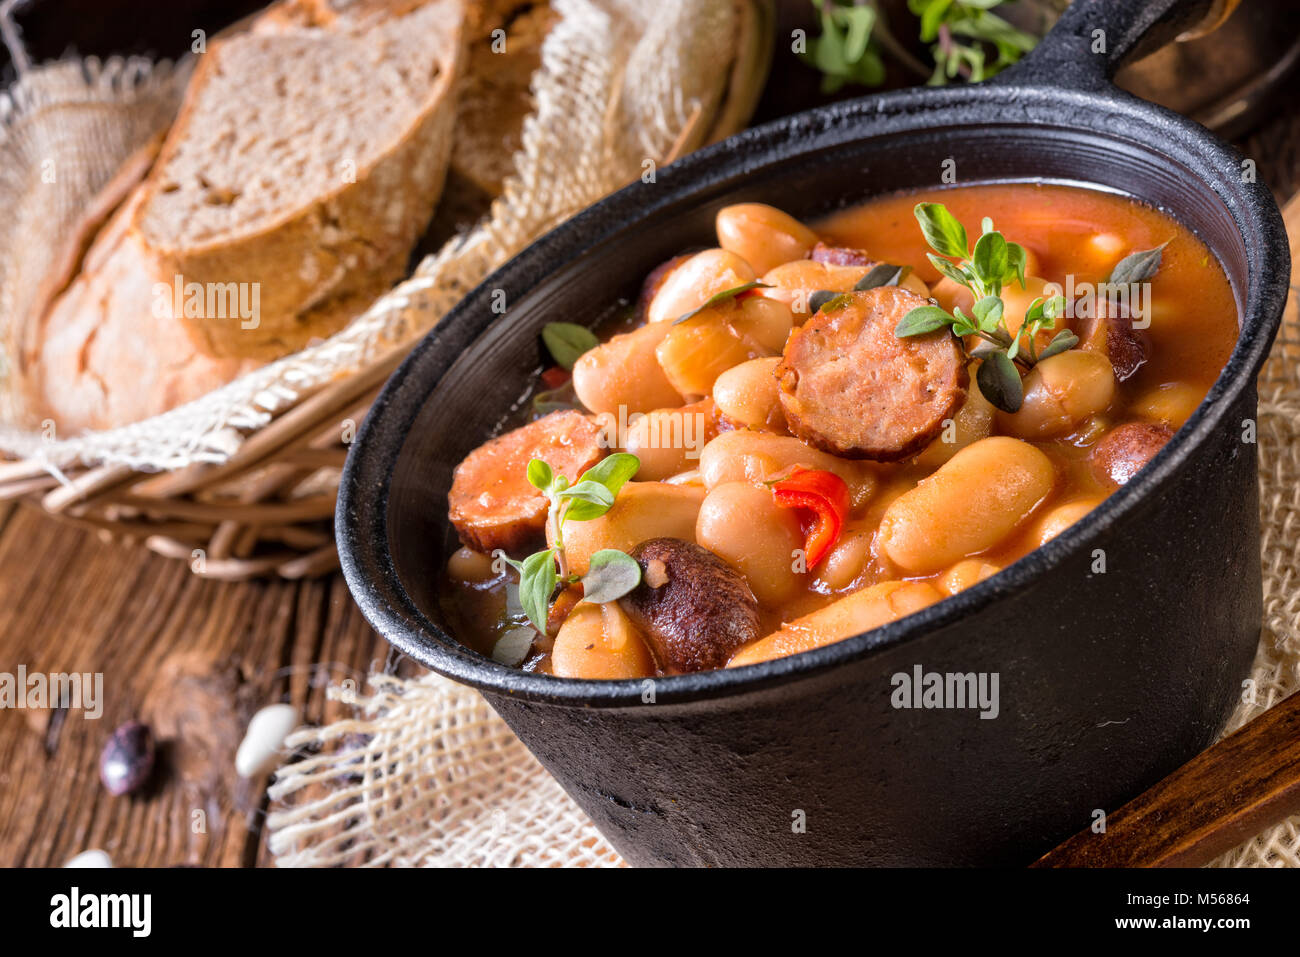 Polish Baked Beans with sausage - Stock Image